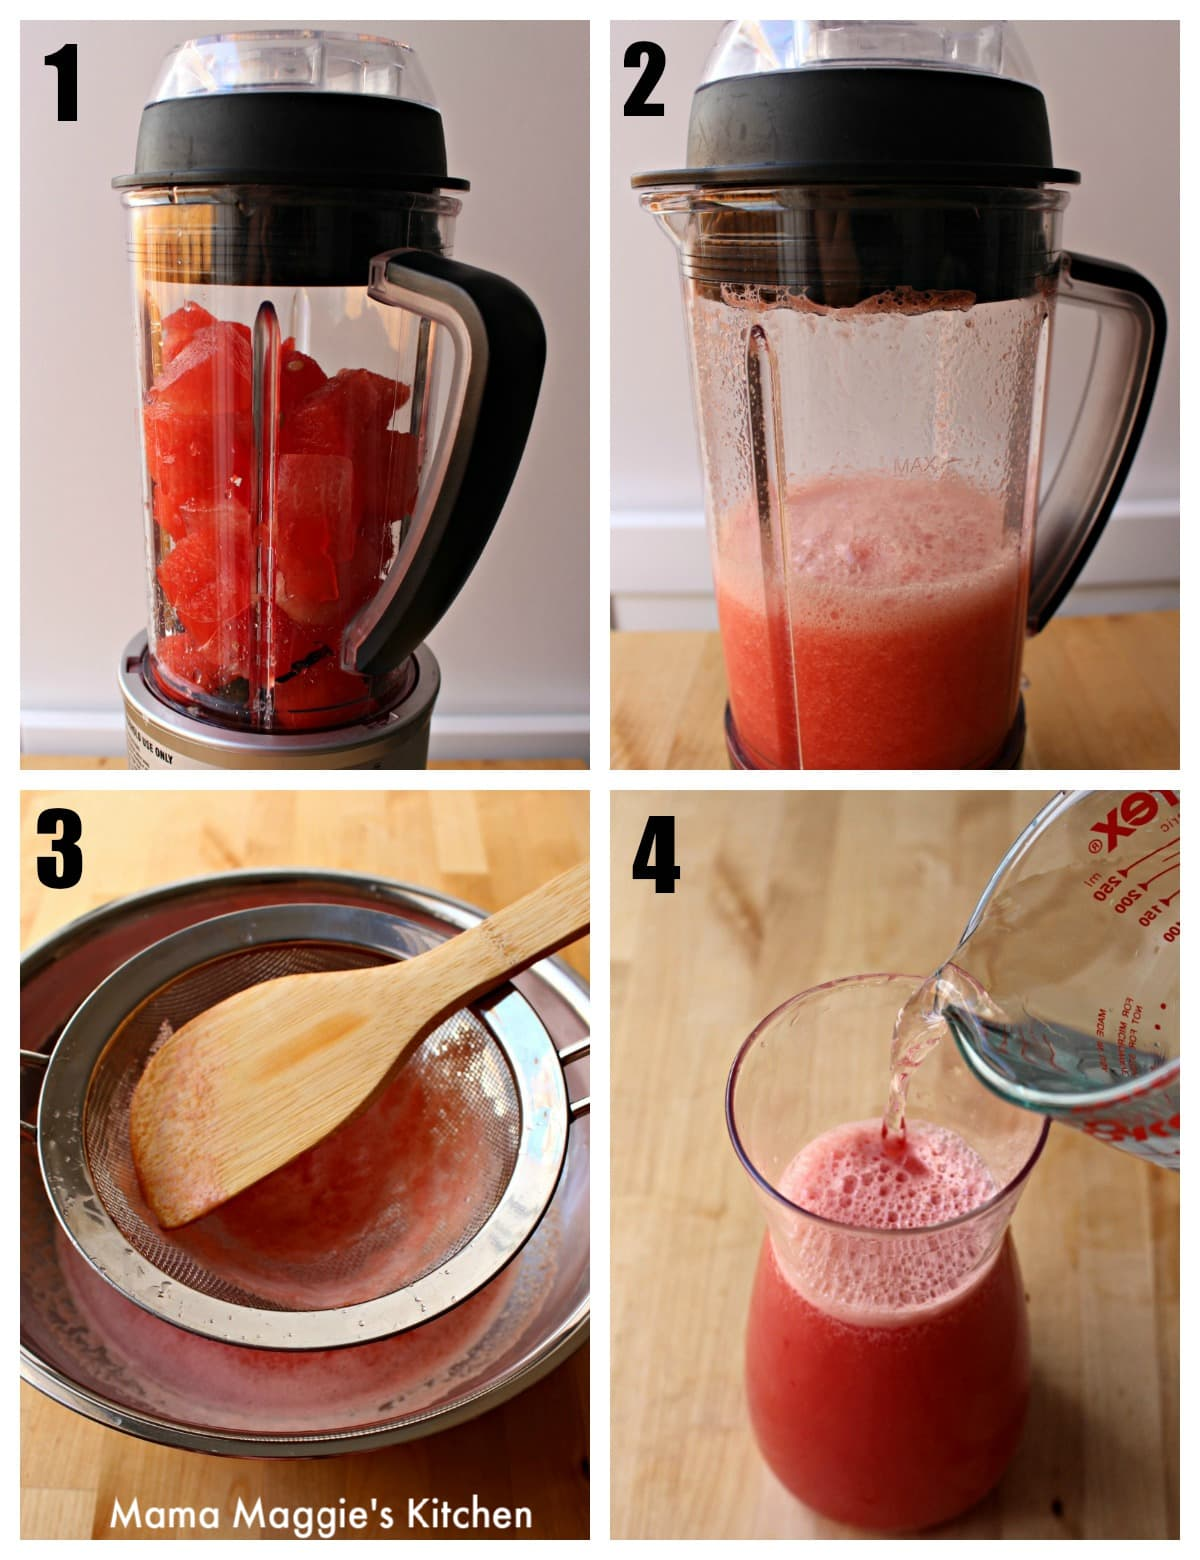 A collage of four pictures showing the process of how to blend and strain the watermelon mixture.